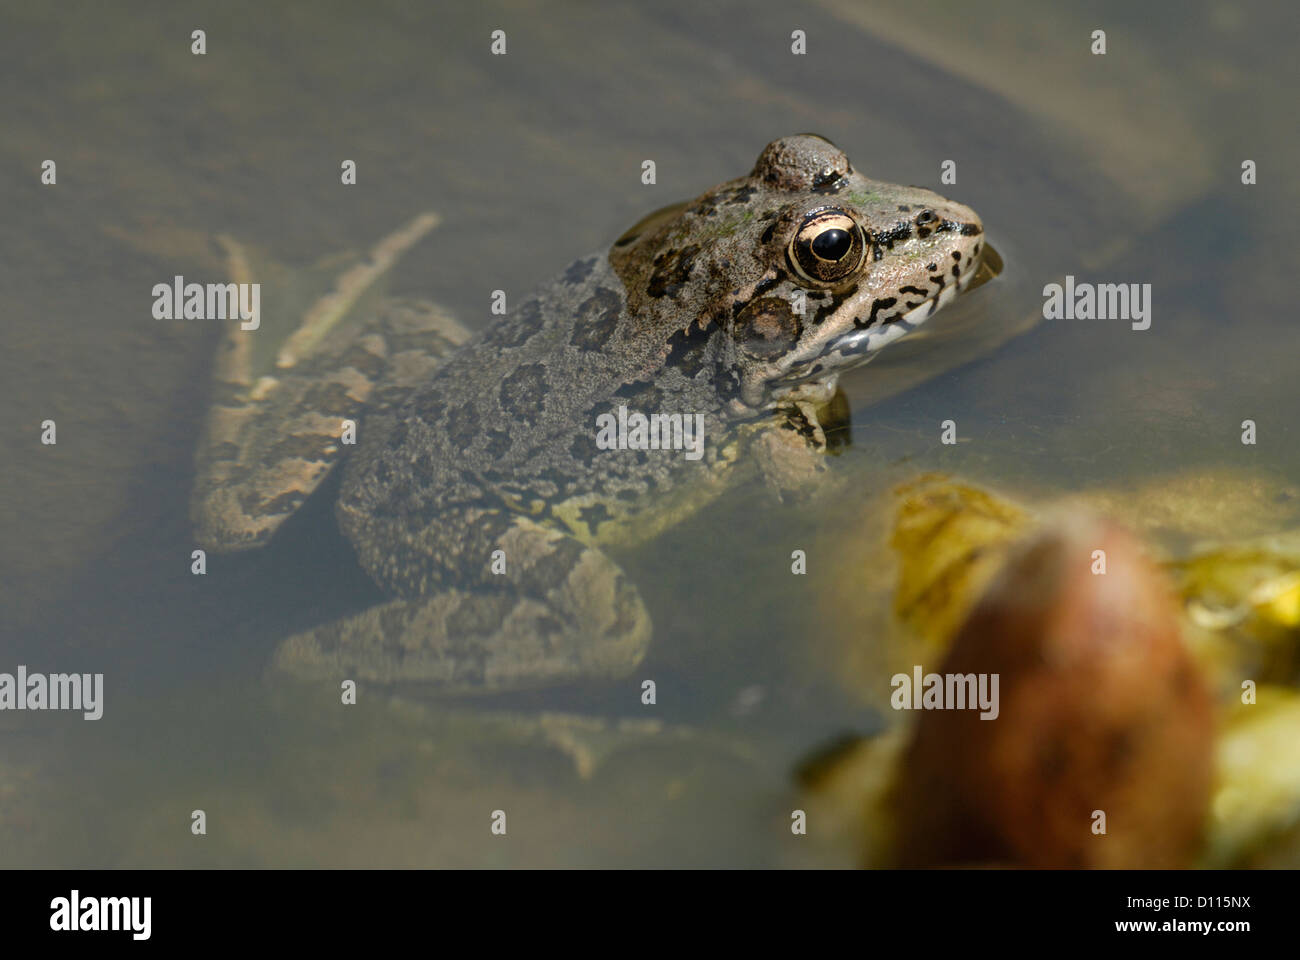 Iberian Water Frog (Pelophylax perezi) in Monfrague National Park, Spain - Stock Image